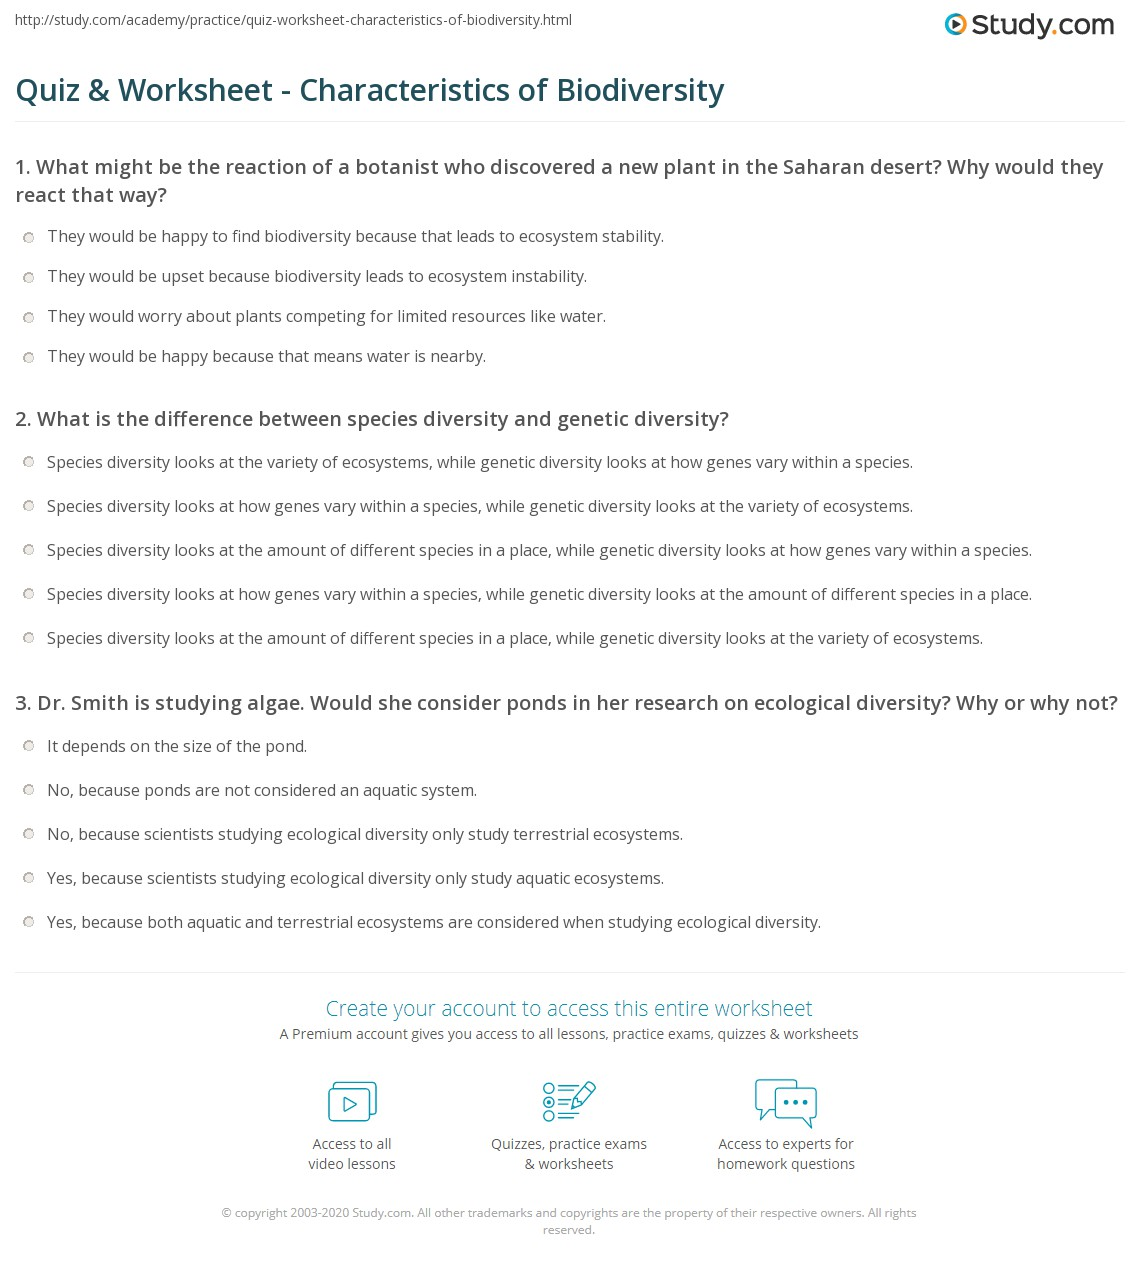 picture about Biodiversity Printable Worksheets titled Quiz Worksheet - Features of Biodiversity